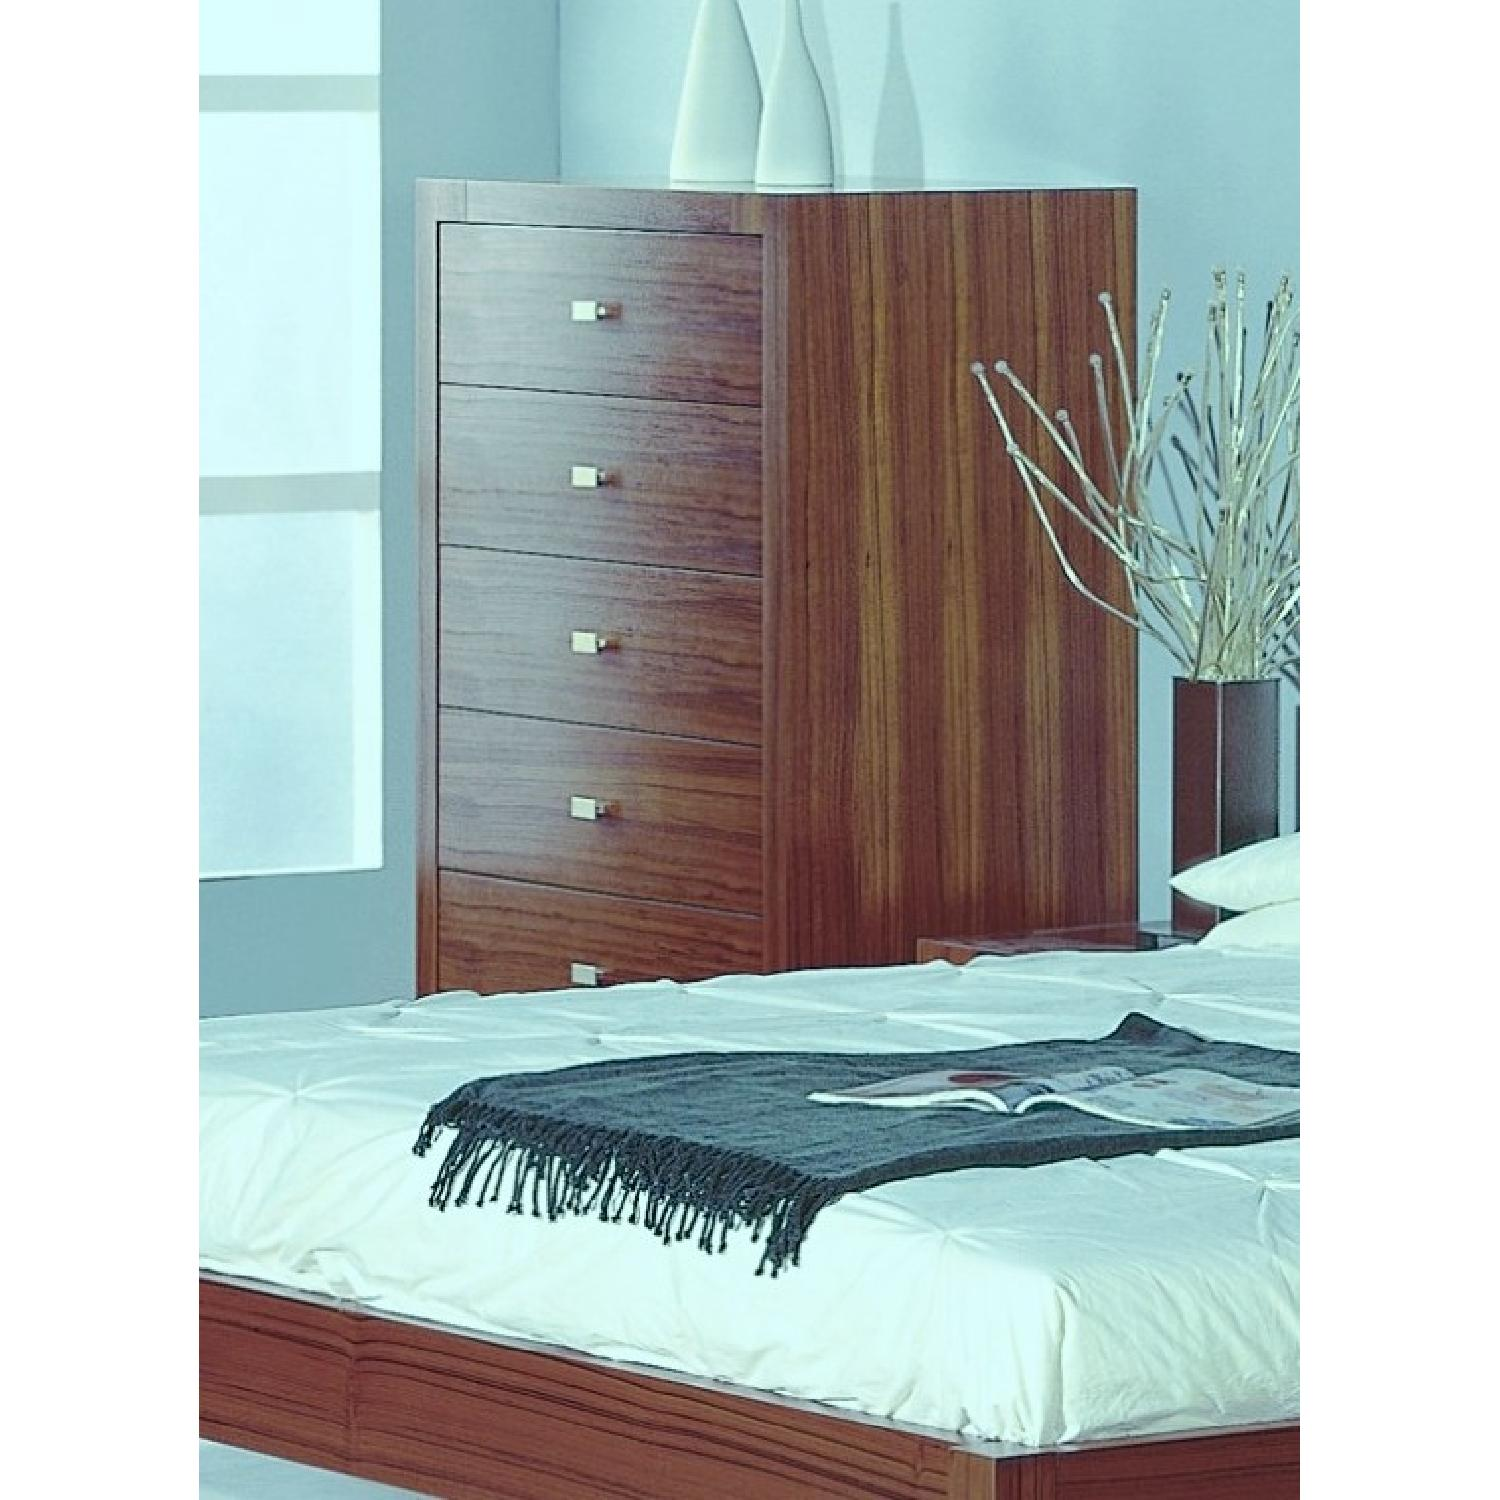 Modern 6-Drawer Chest in Walnut Finish w/ Brushed Nickel Handles